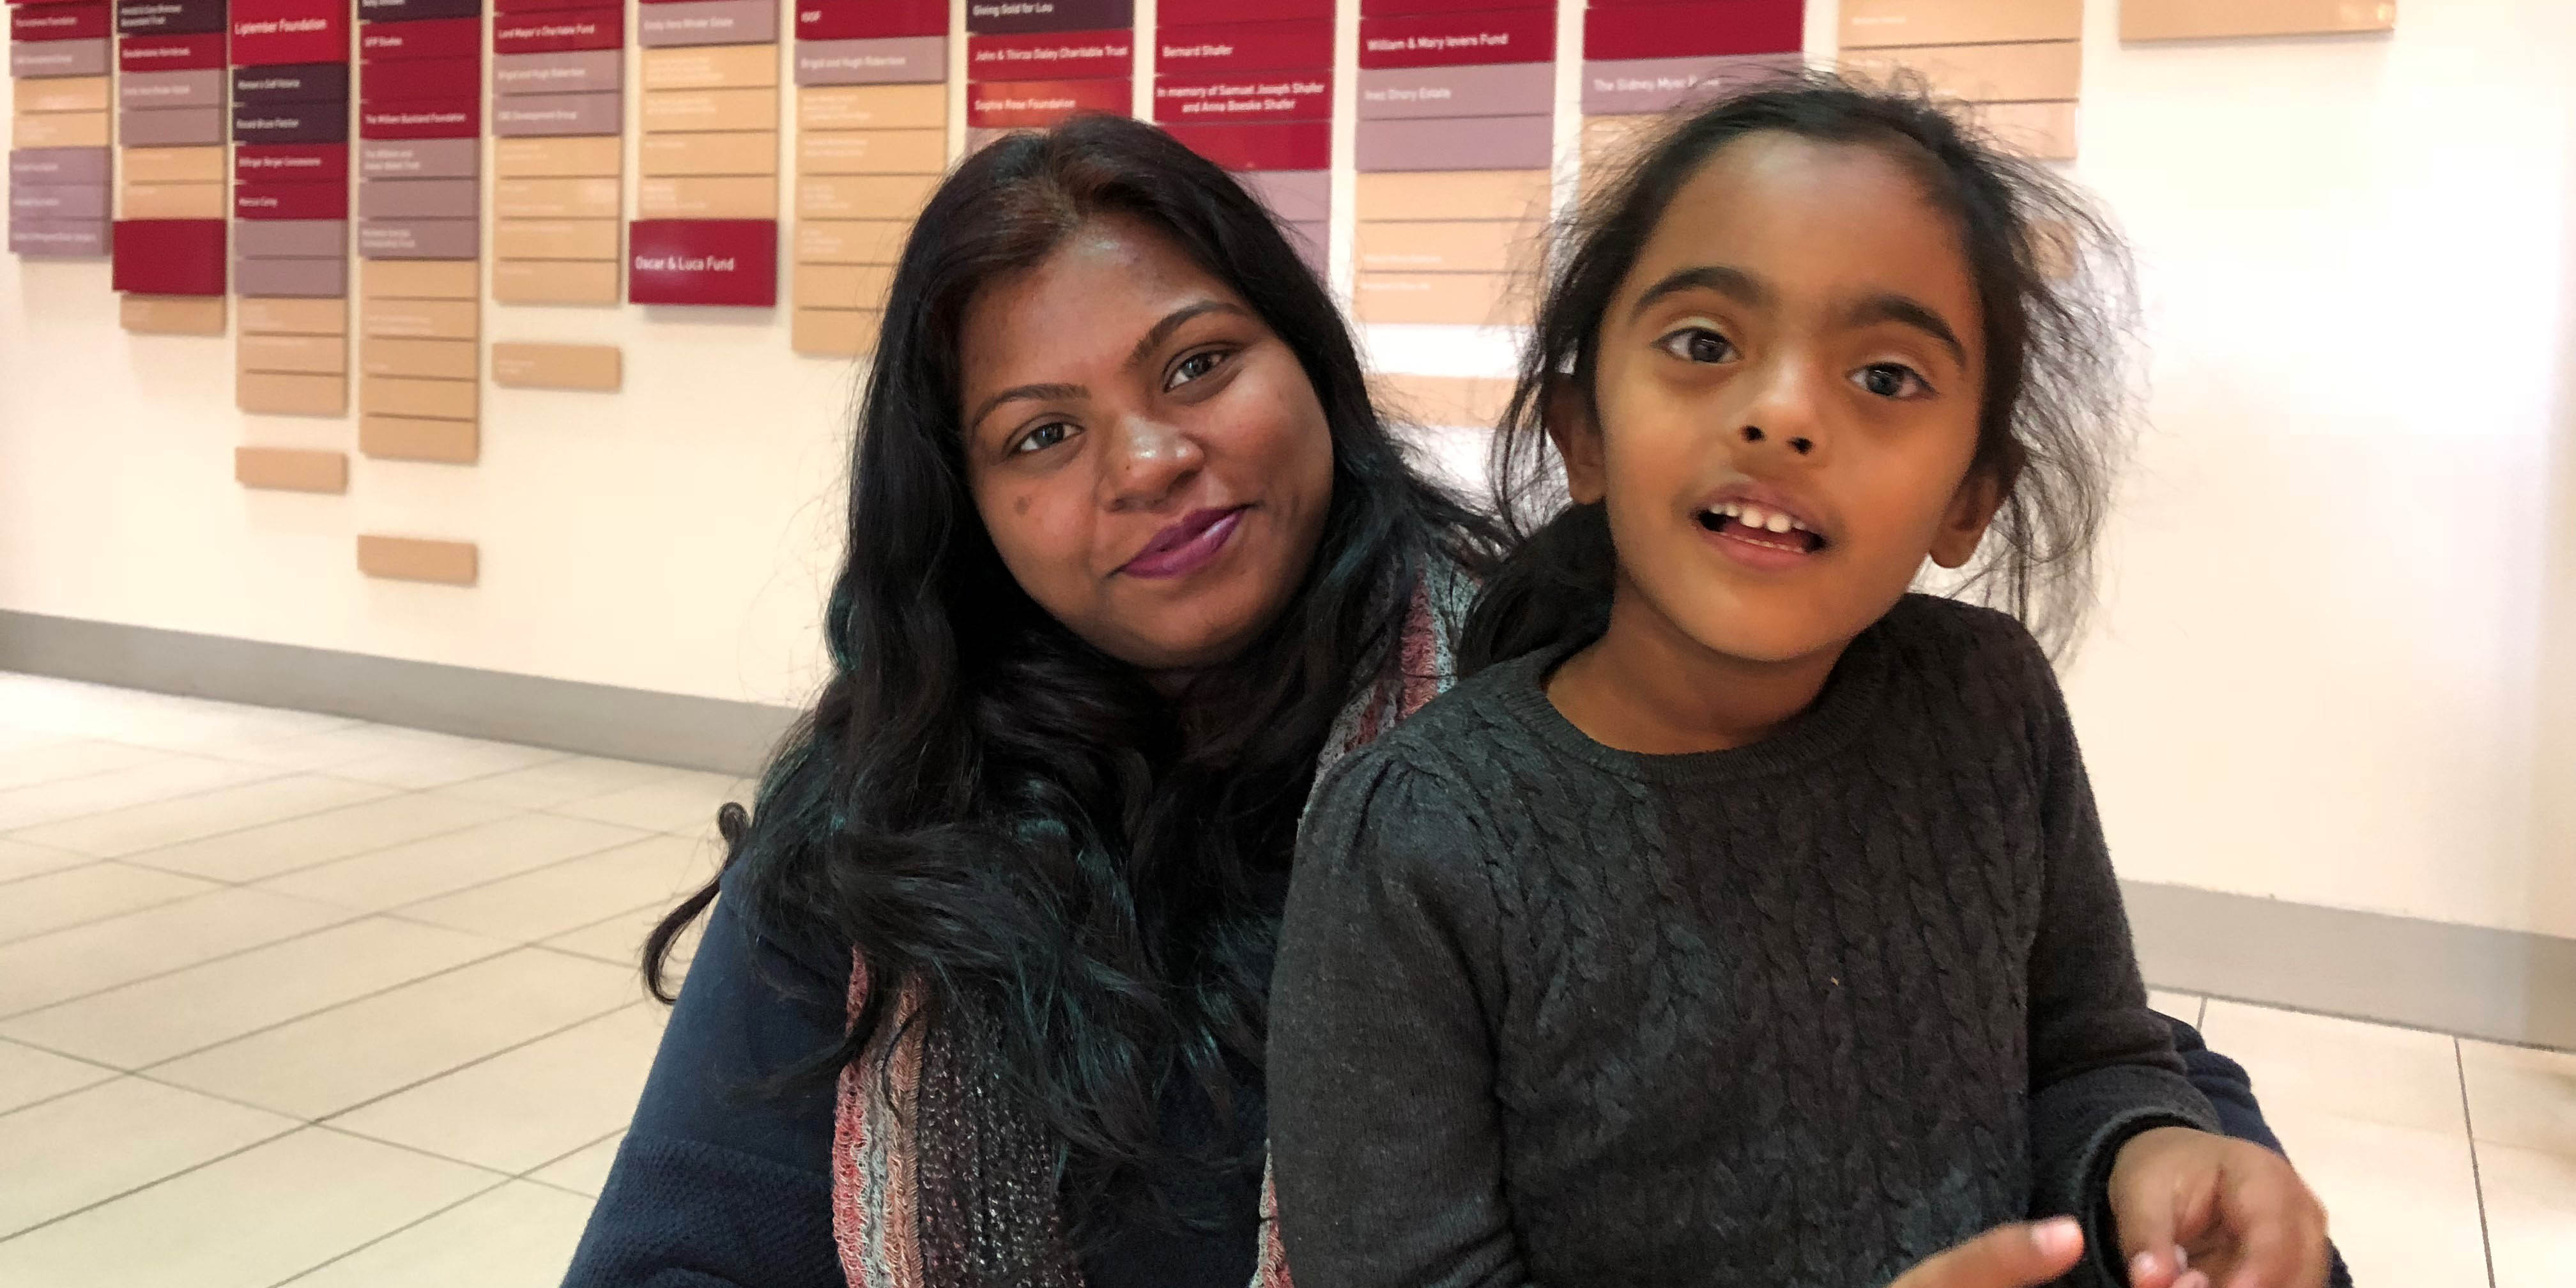 Mum Kavita experienced six miscarriages before having her daughter Aradhana early at 28 weeks. She had the cervical stitch procedure after Aradhana's birth and is now almost 28 weeks pregnant with another baby girl.